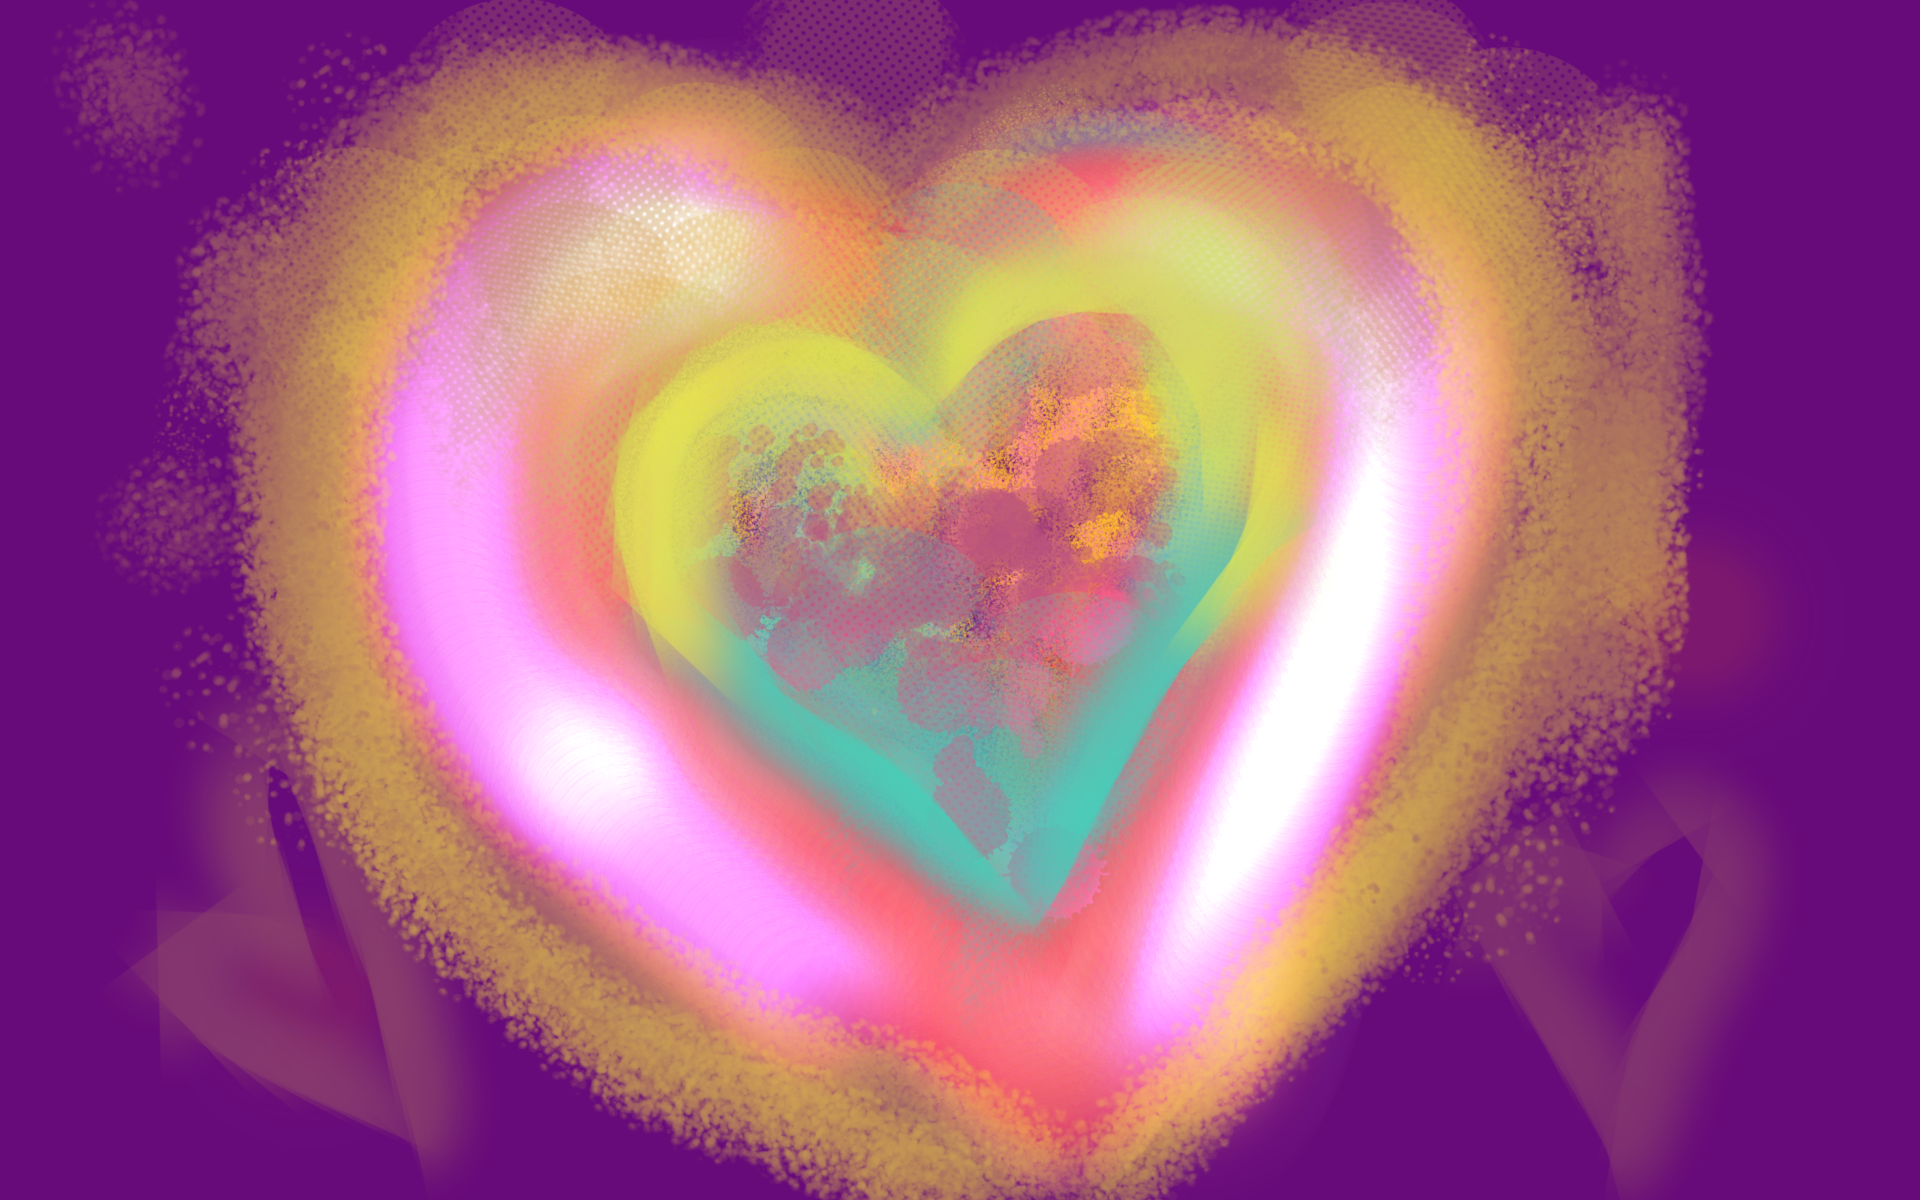 An enlightened heart is bright and glowing with light and colours.  Gold, violet, pink. It radiates !ight and love.